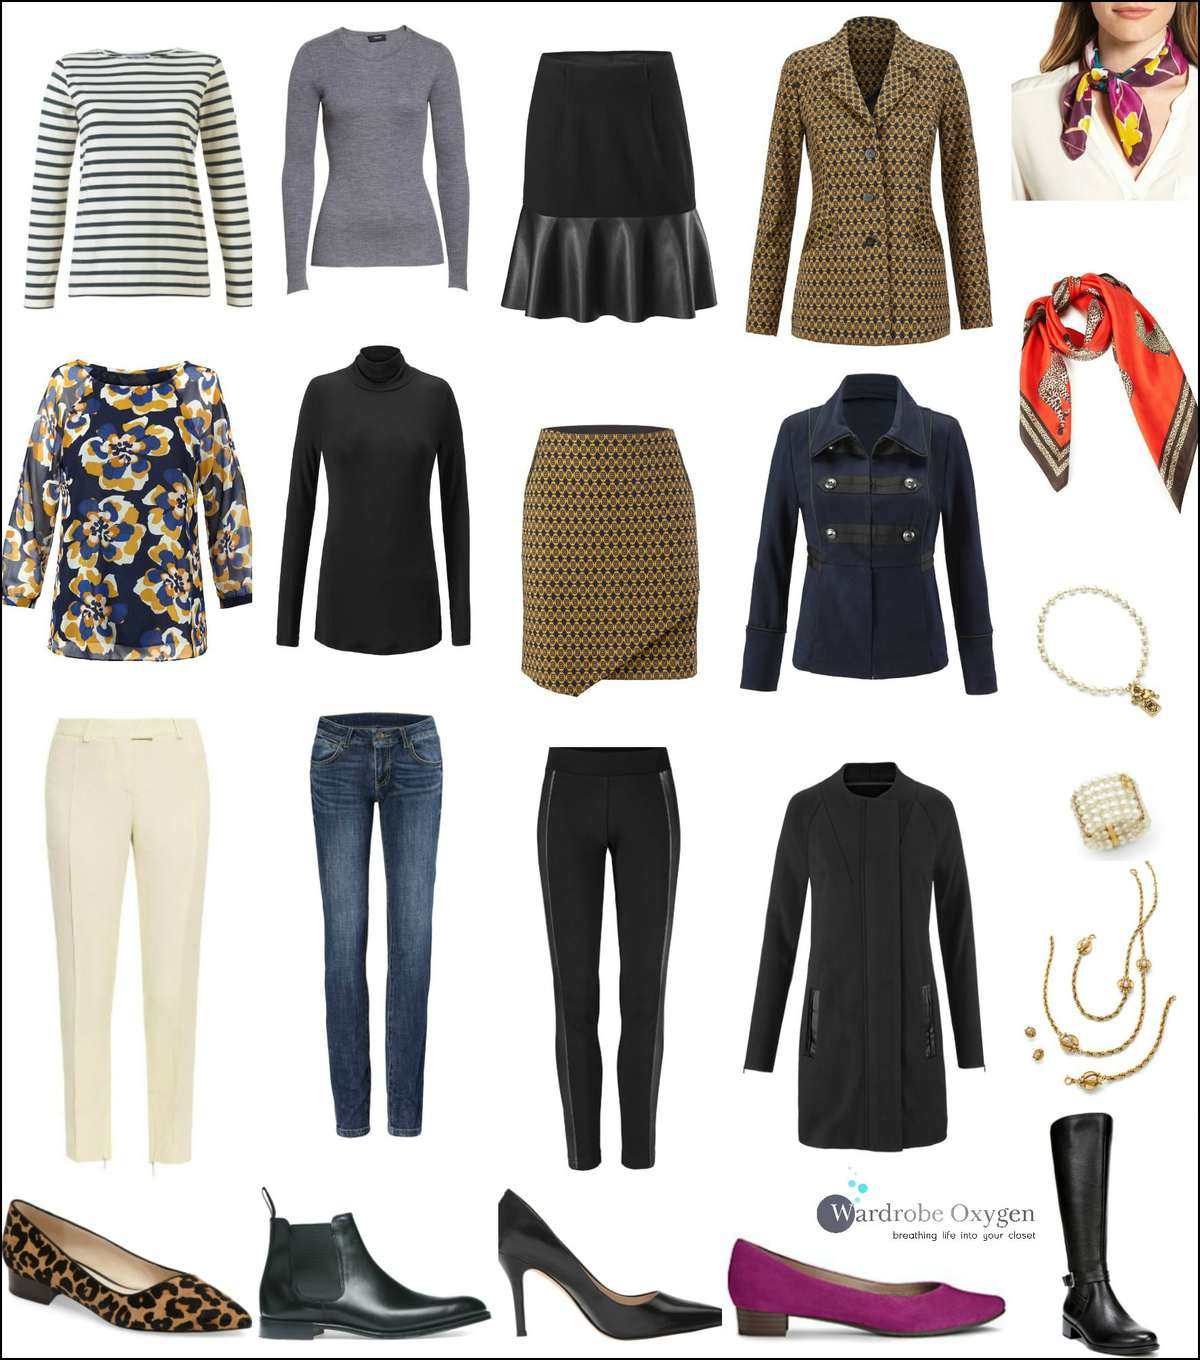 A fall capsule wardrobe inspired by the Cabi Fall 2017 Collection. Featuring pieces from the latest cabi clothing line alone with wardrobe basics, this capsule wardrobe offers more than 20 different looks for work, weekend, and beyond. Click to see photos of all the different combinations and styling tips from Wardrobe Oxygen